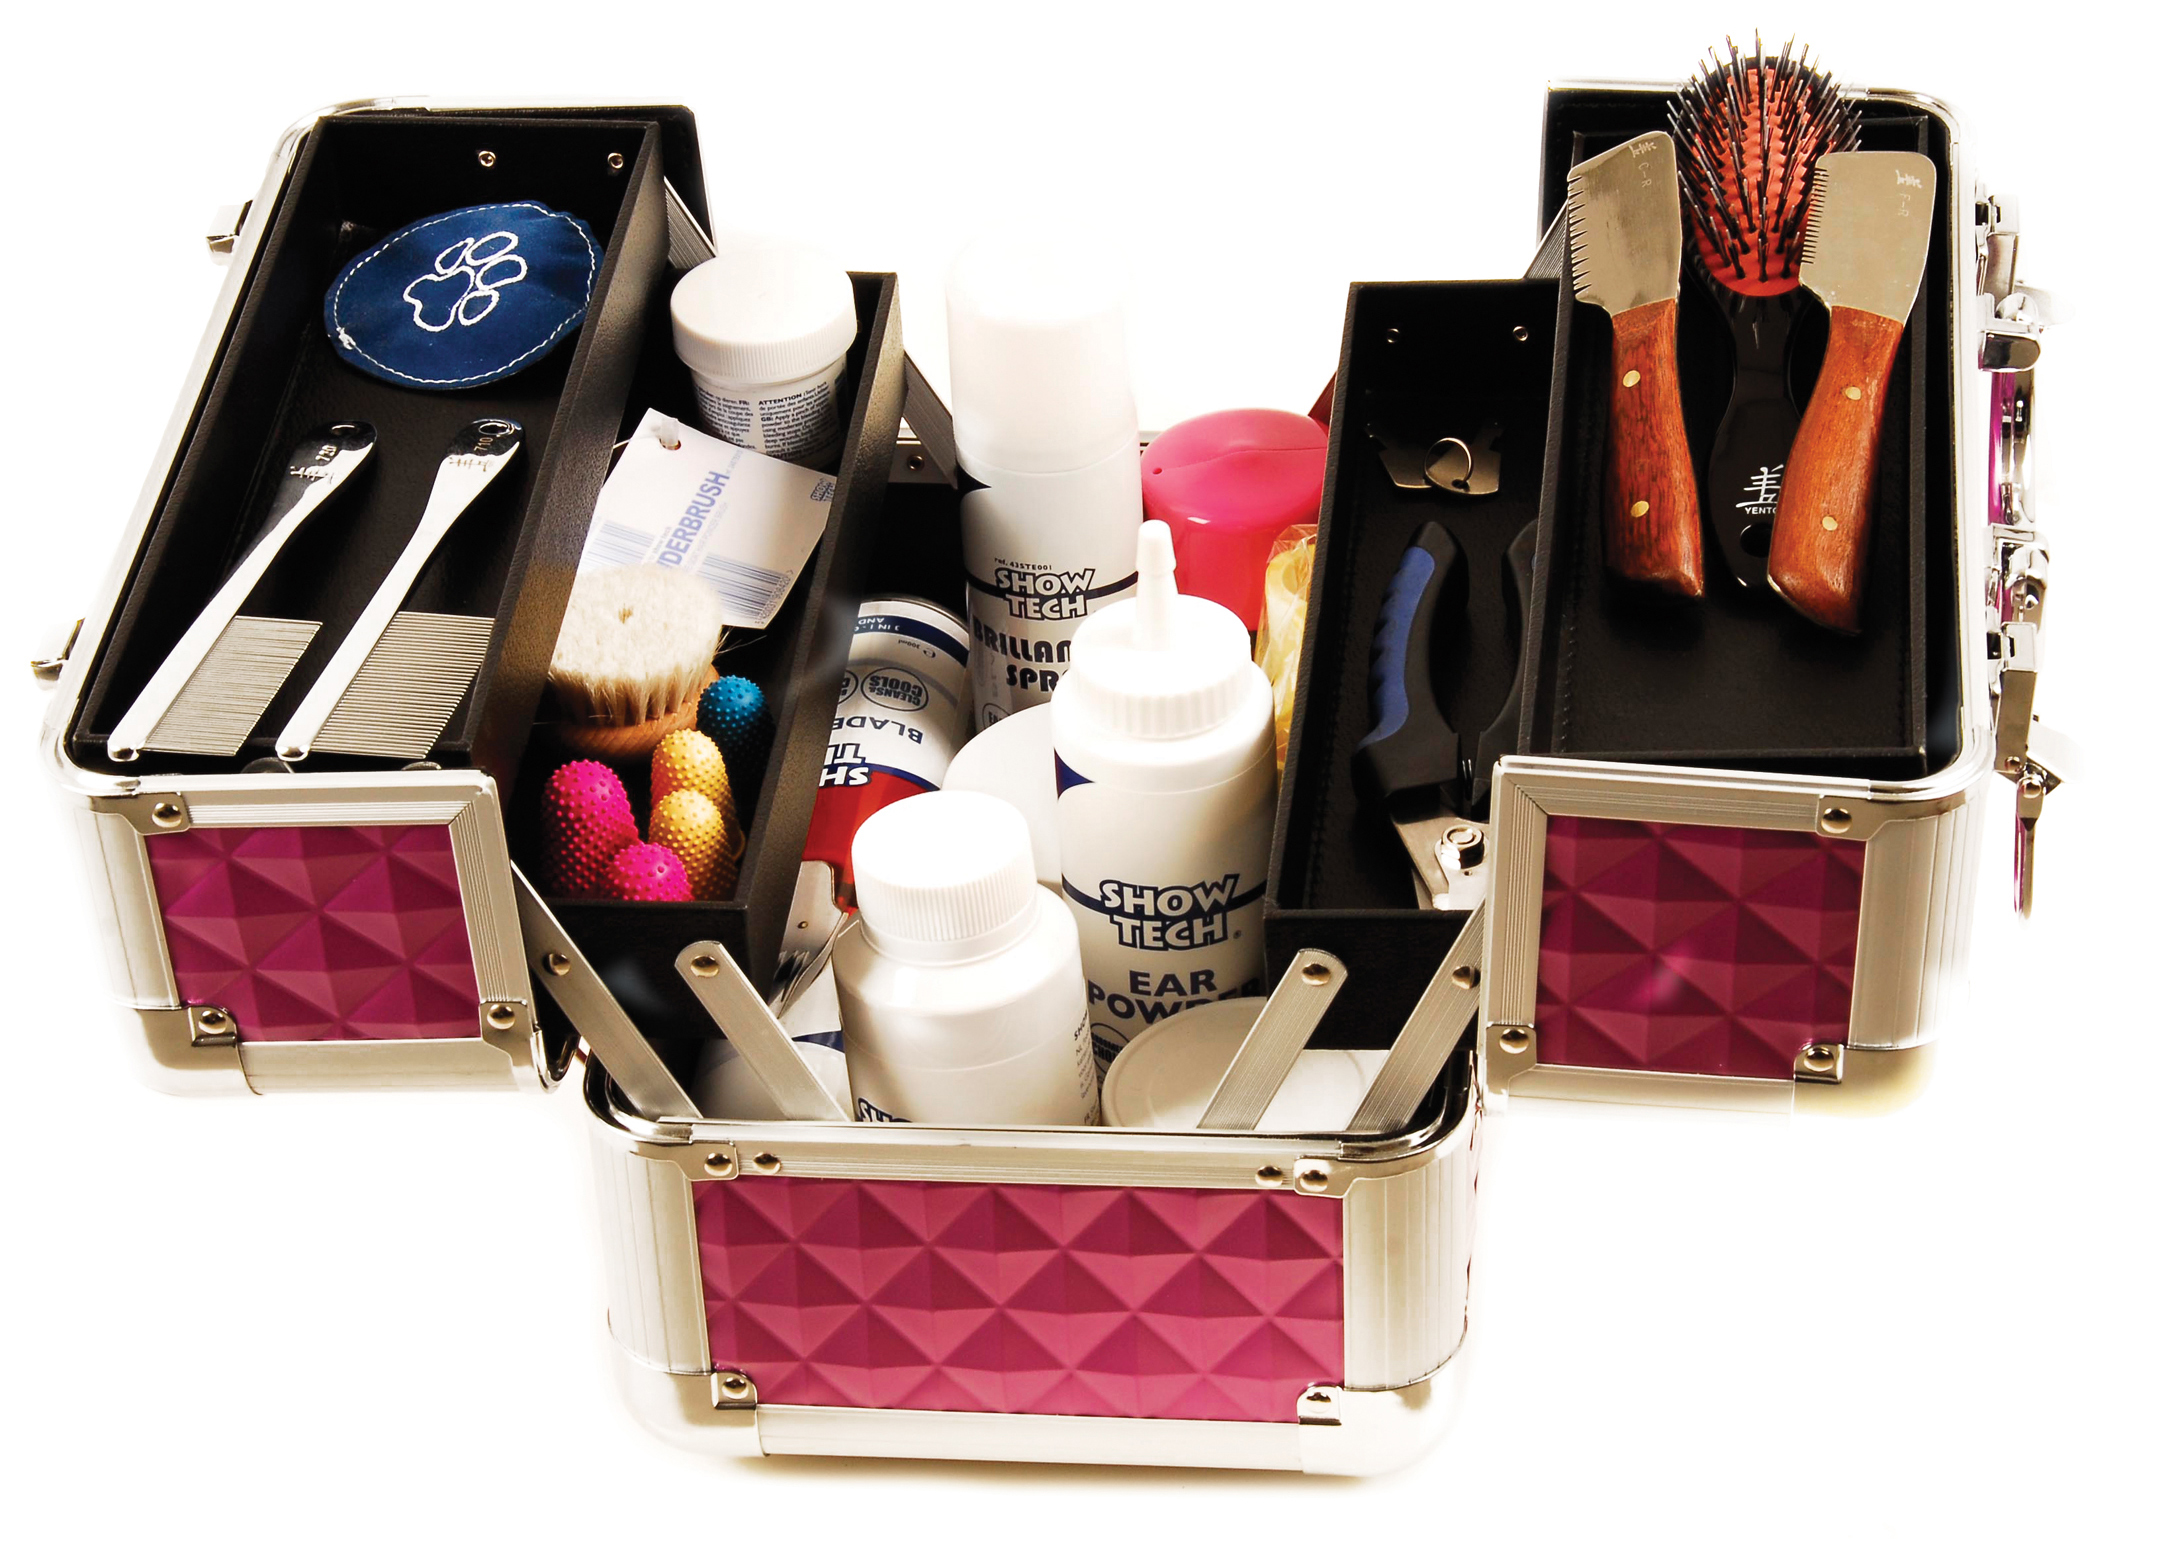 Groom-X Grooming Case Mini Portable with Diamond ABS Panel Pink